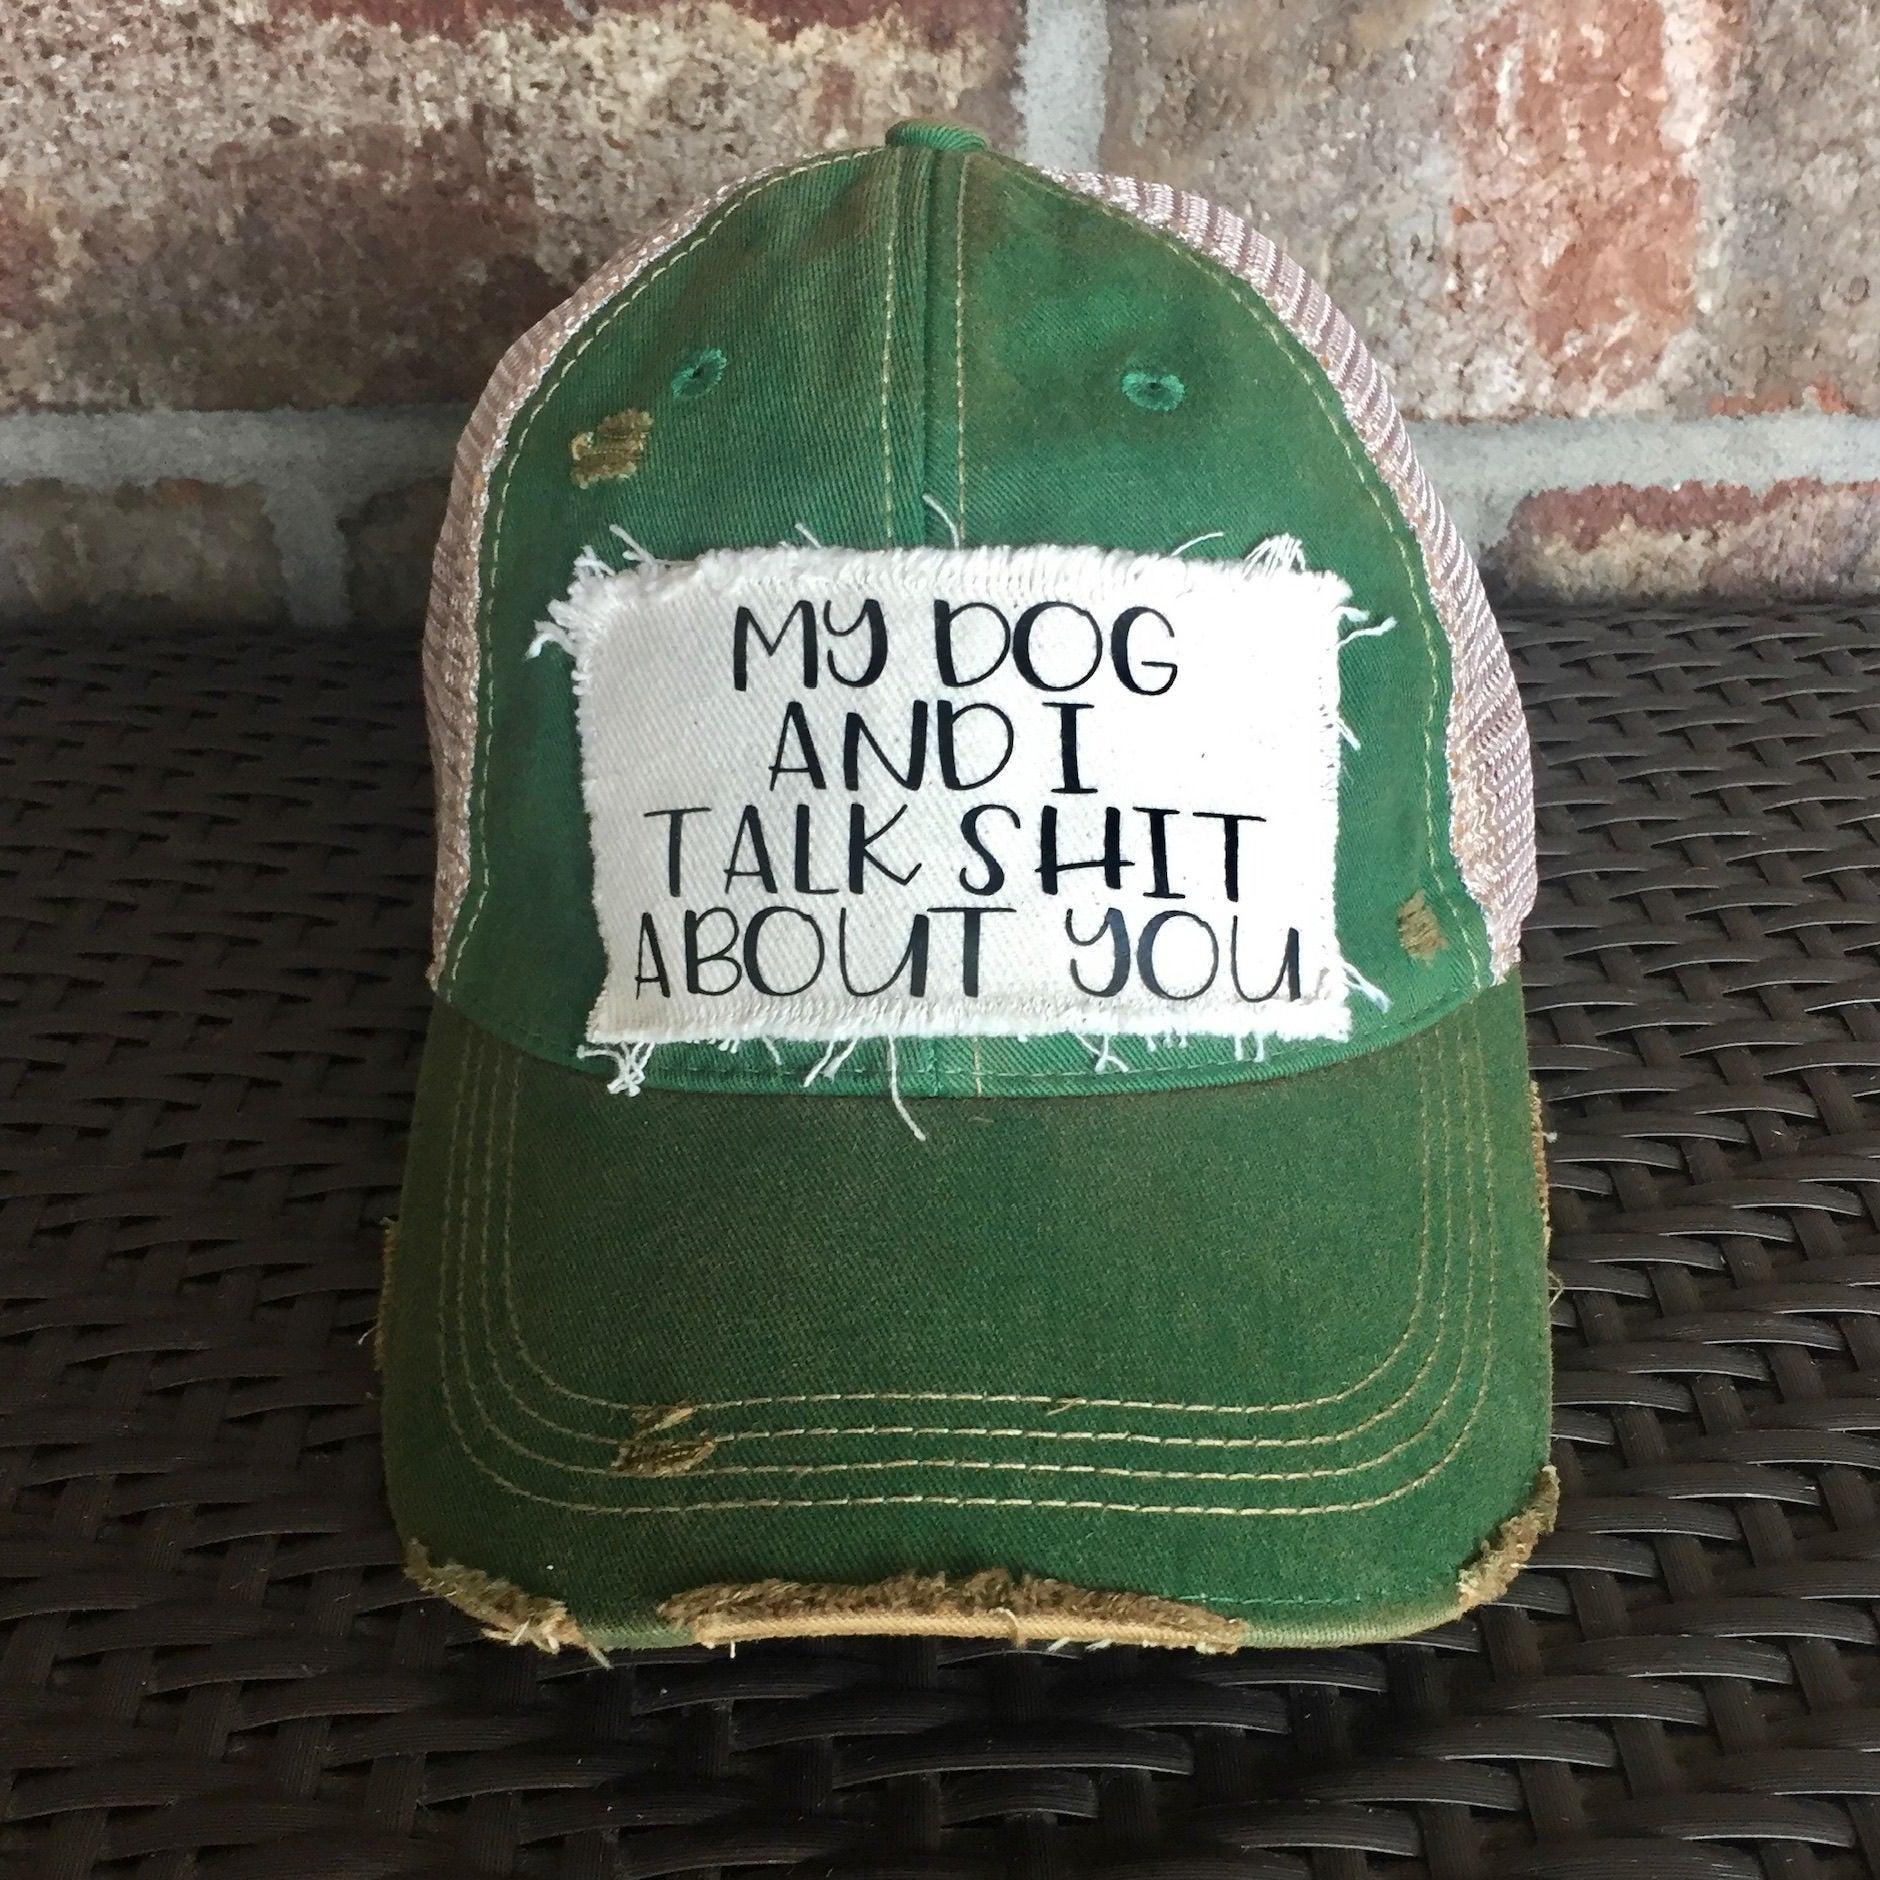 My Dog and I Talk Shit About You Hat, Unisex Hat, Unisex Cap, Baseball Hat, Men's Hat, Women's Hat, Ball Cap, Distressed Hat, Weathered Hat